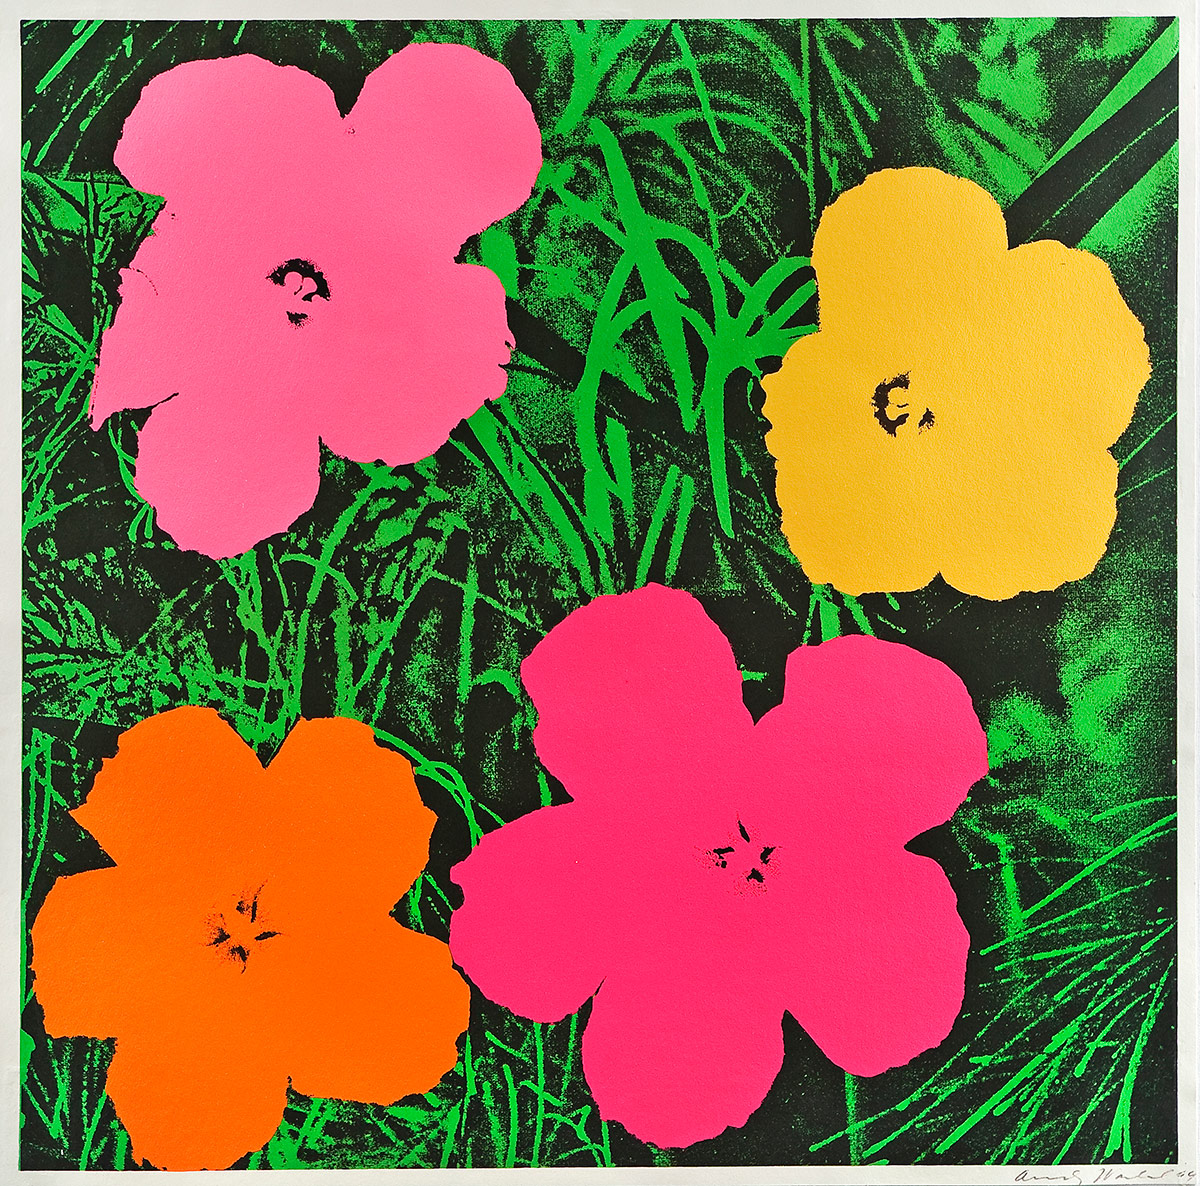 Andy Warhol  Flowers  Lithographie  Jahr 1964  55 x